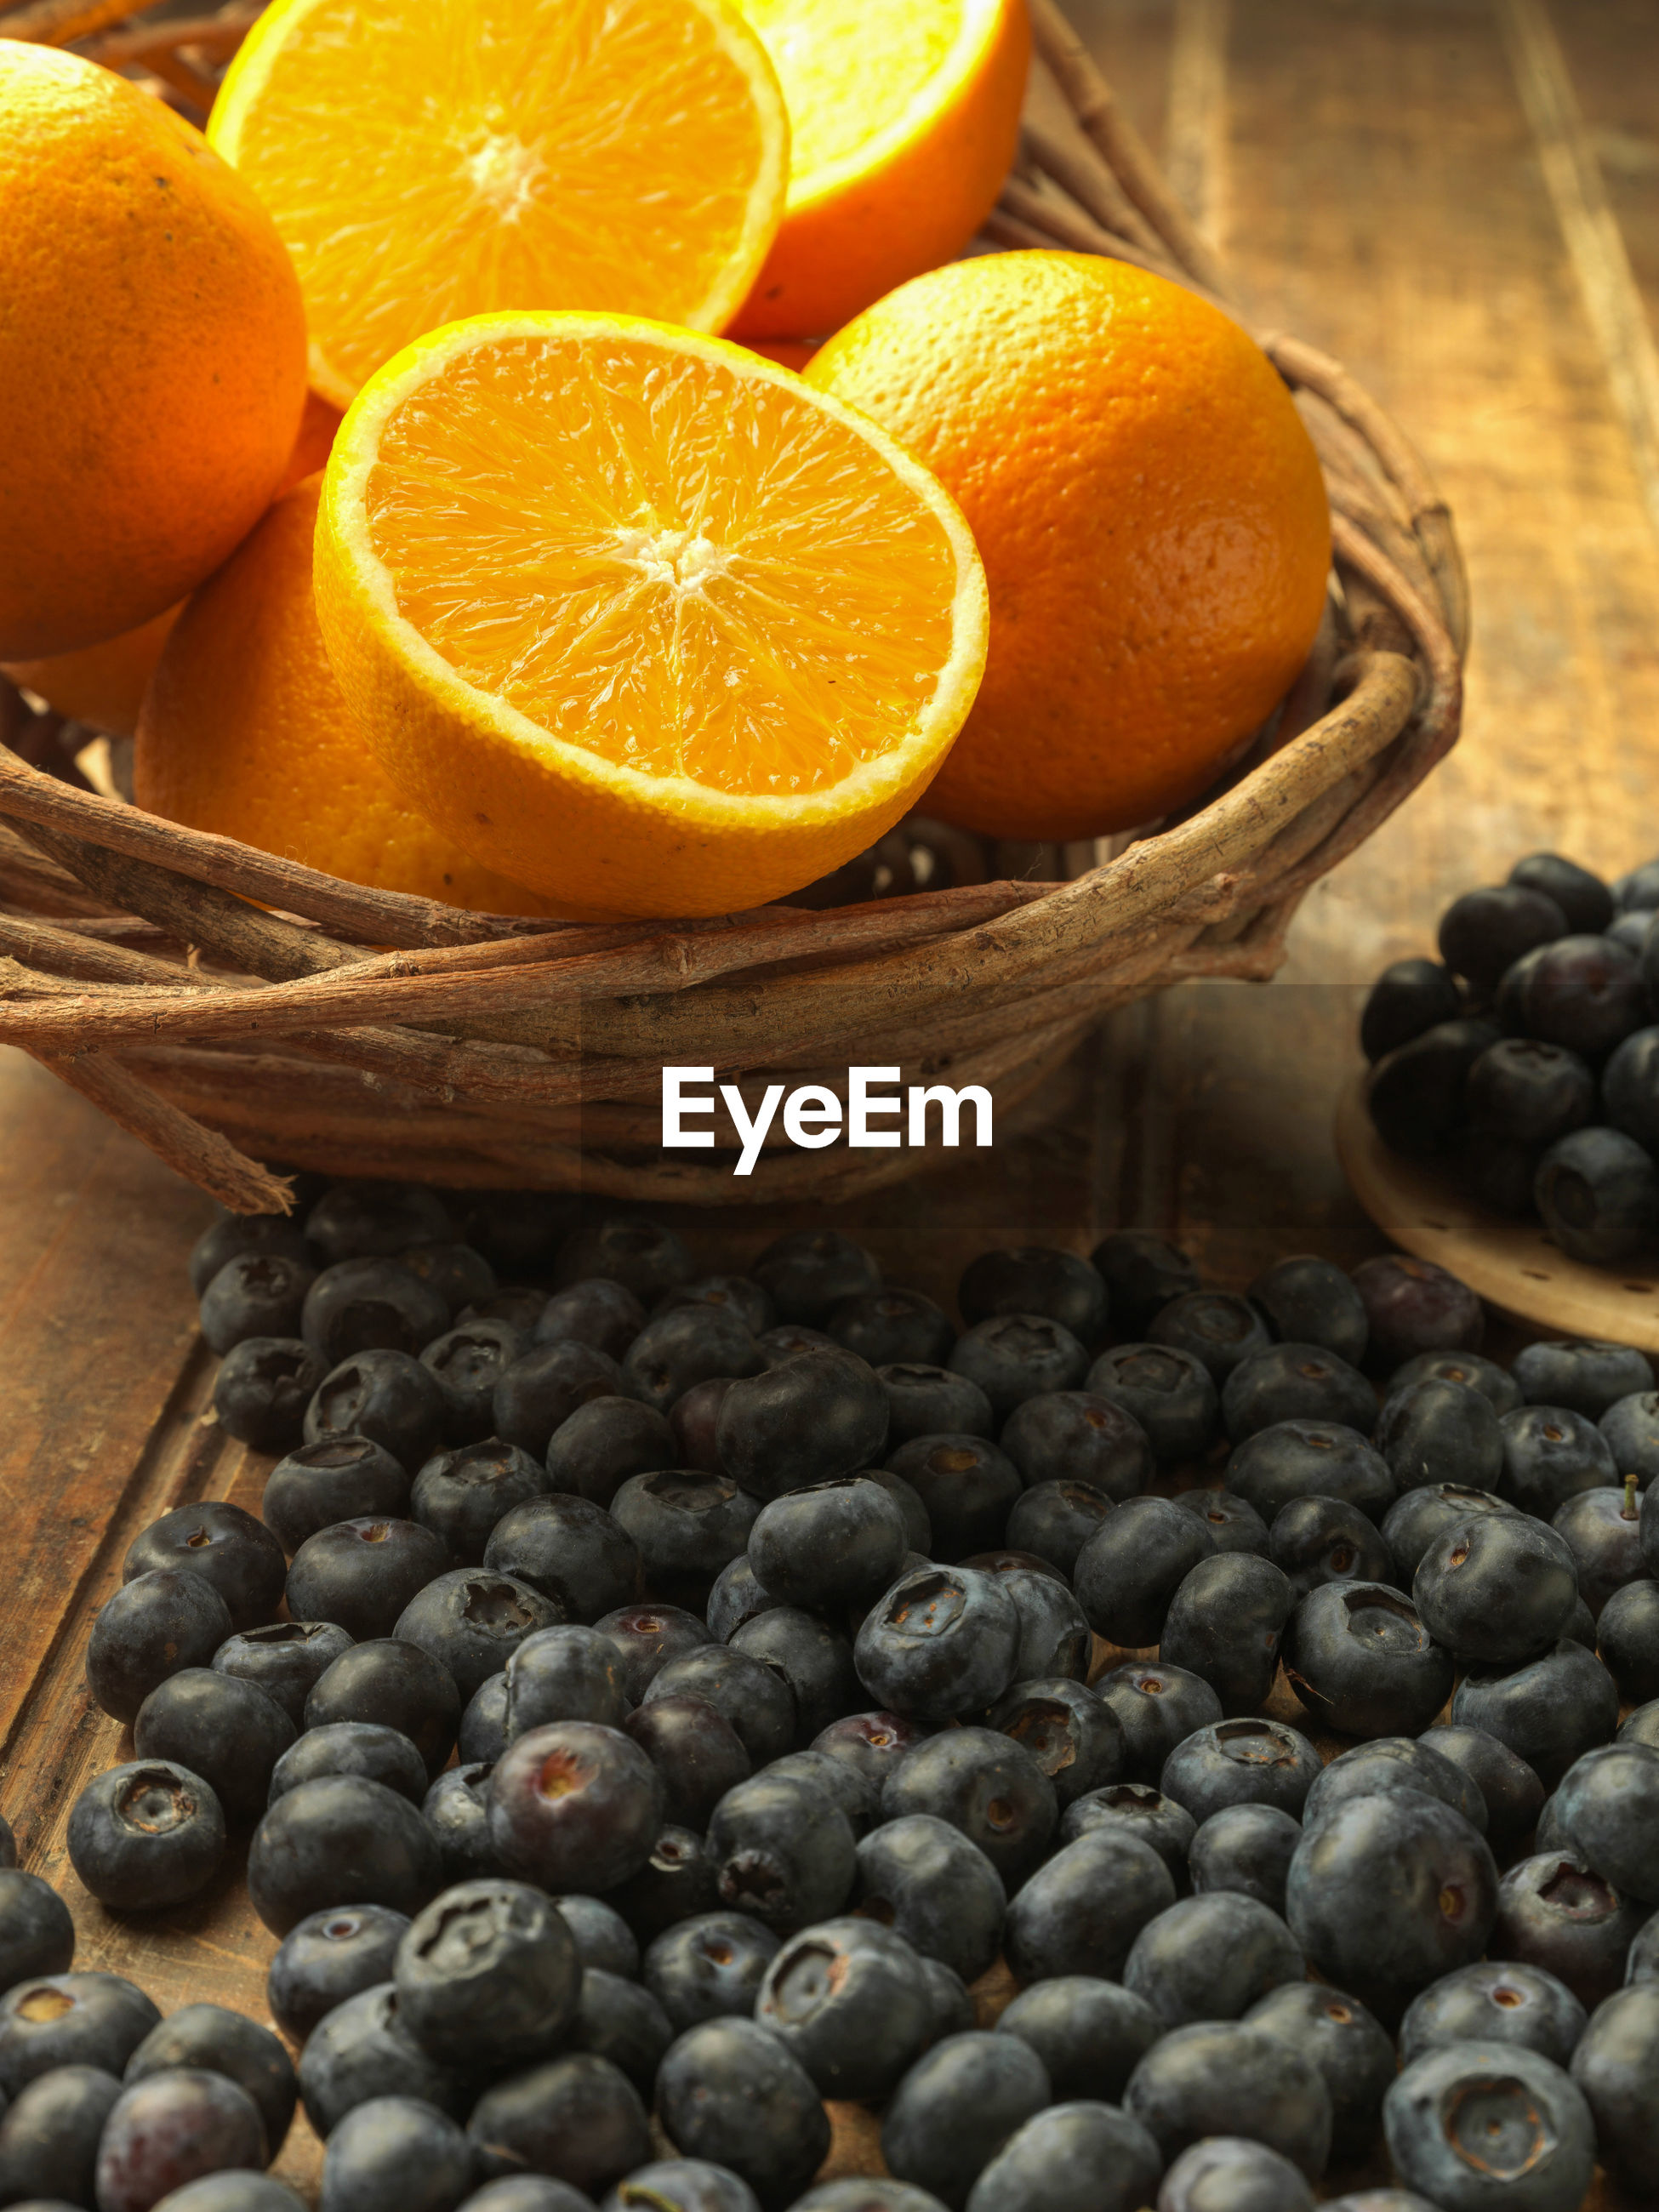 HIGH ANGLE VIEW OF FRUITS IN WICKER BASKET